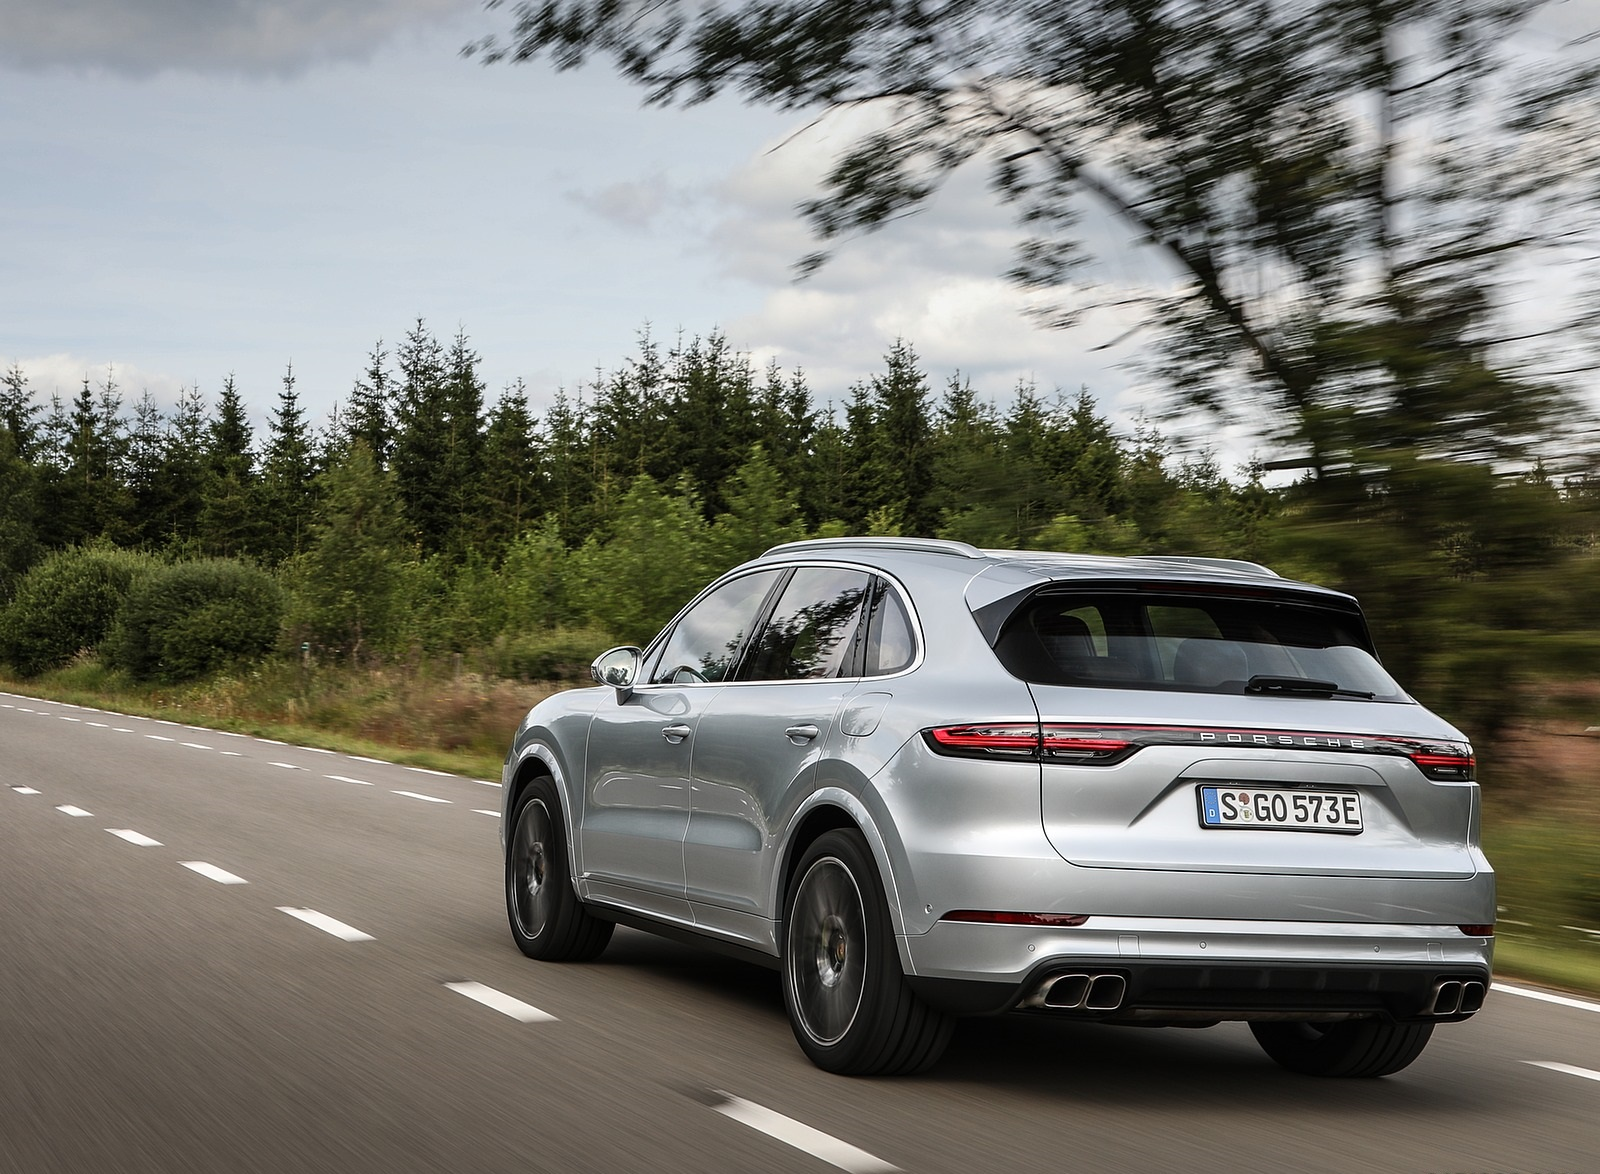 2020 Porsche Cayenne Turbo S E-Hybrid Rear Three-Quarter Wallpapers (9)